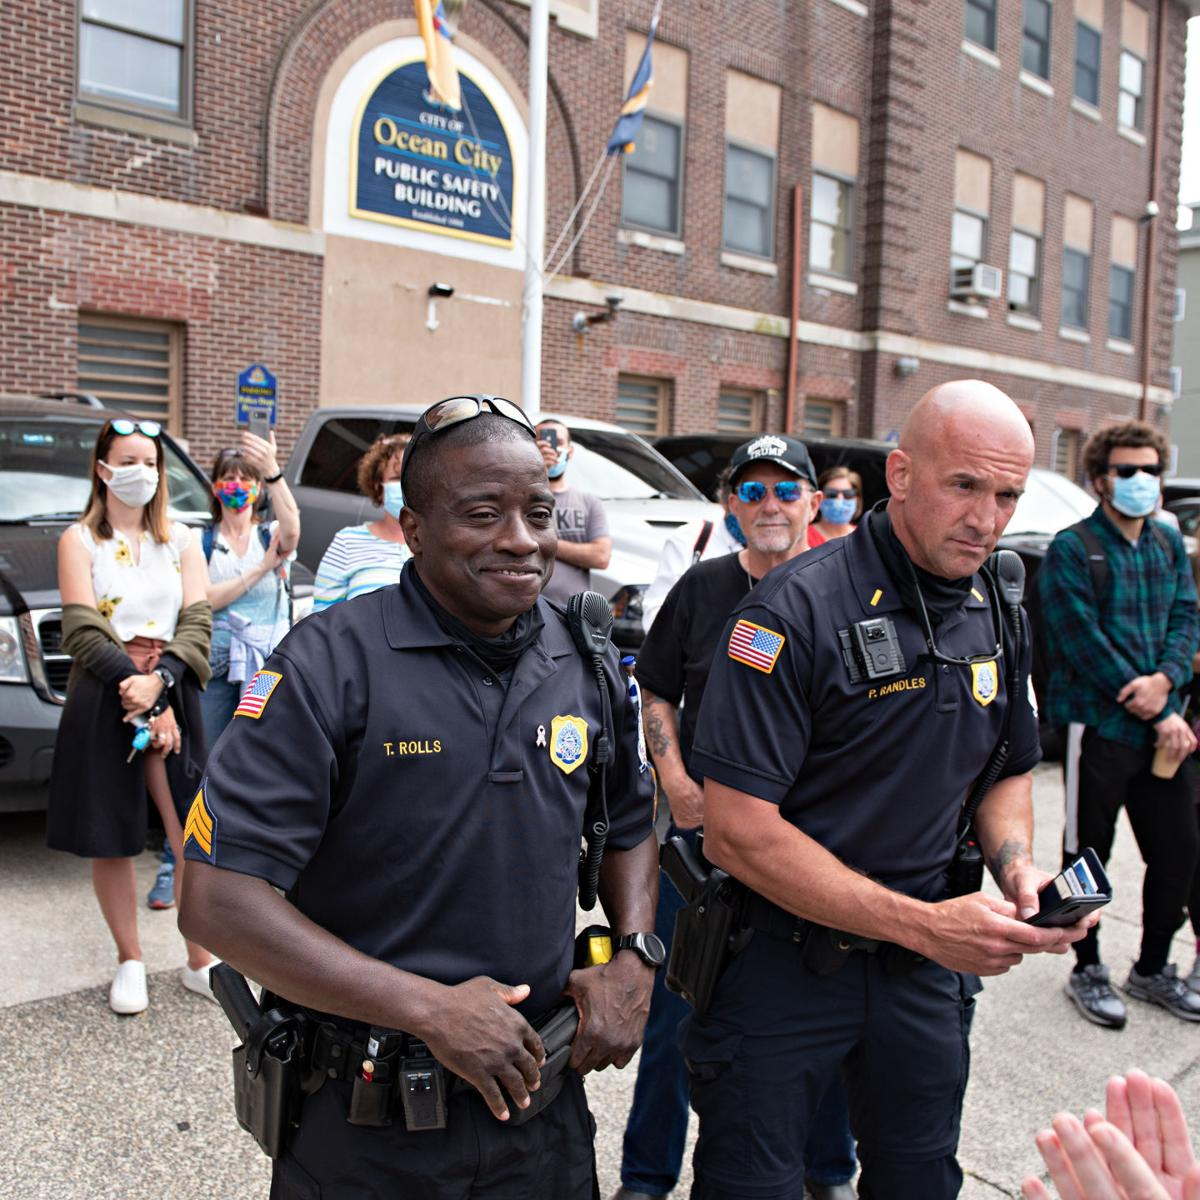 060320_nws_ocprotest_160